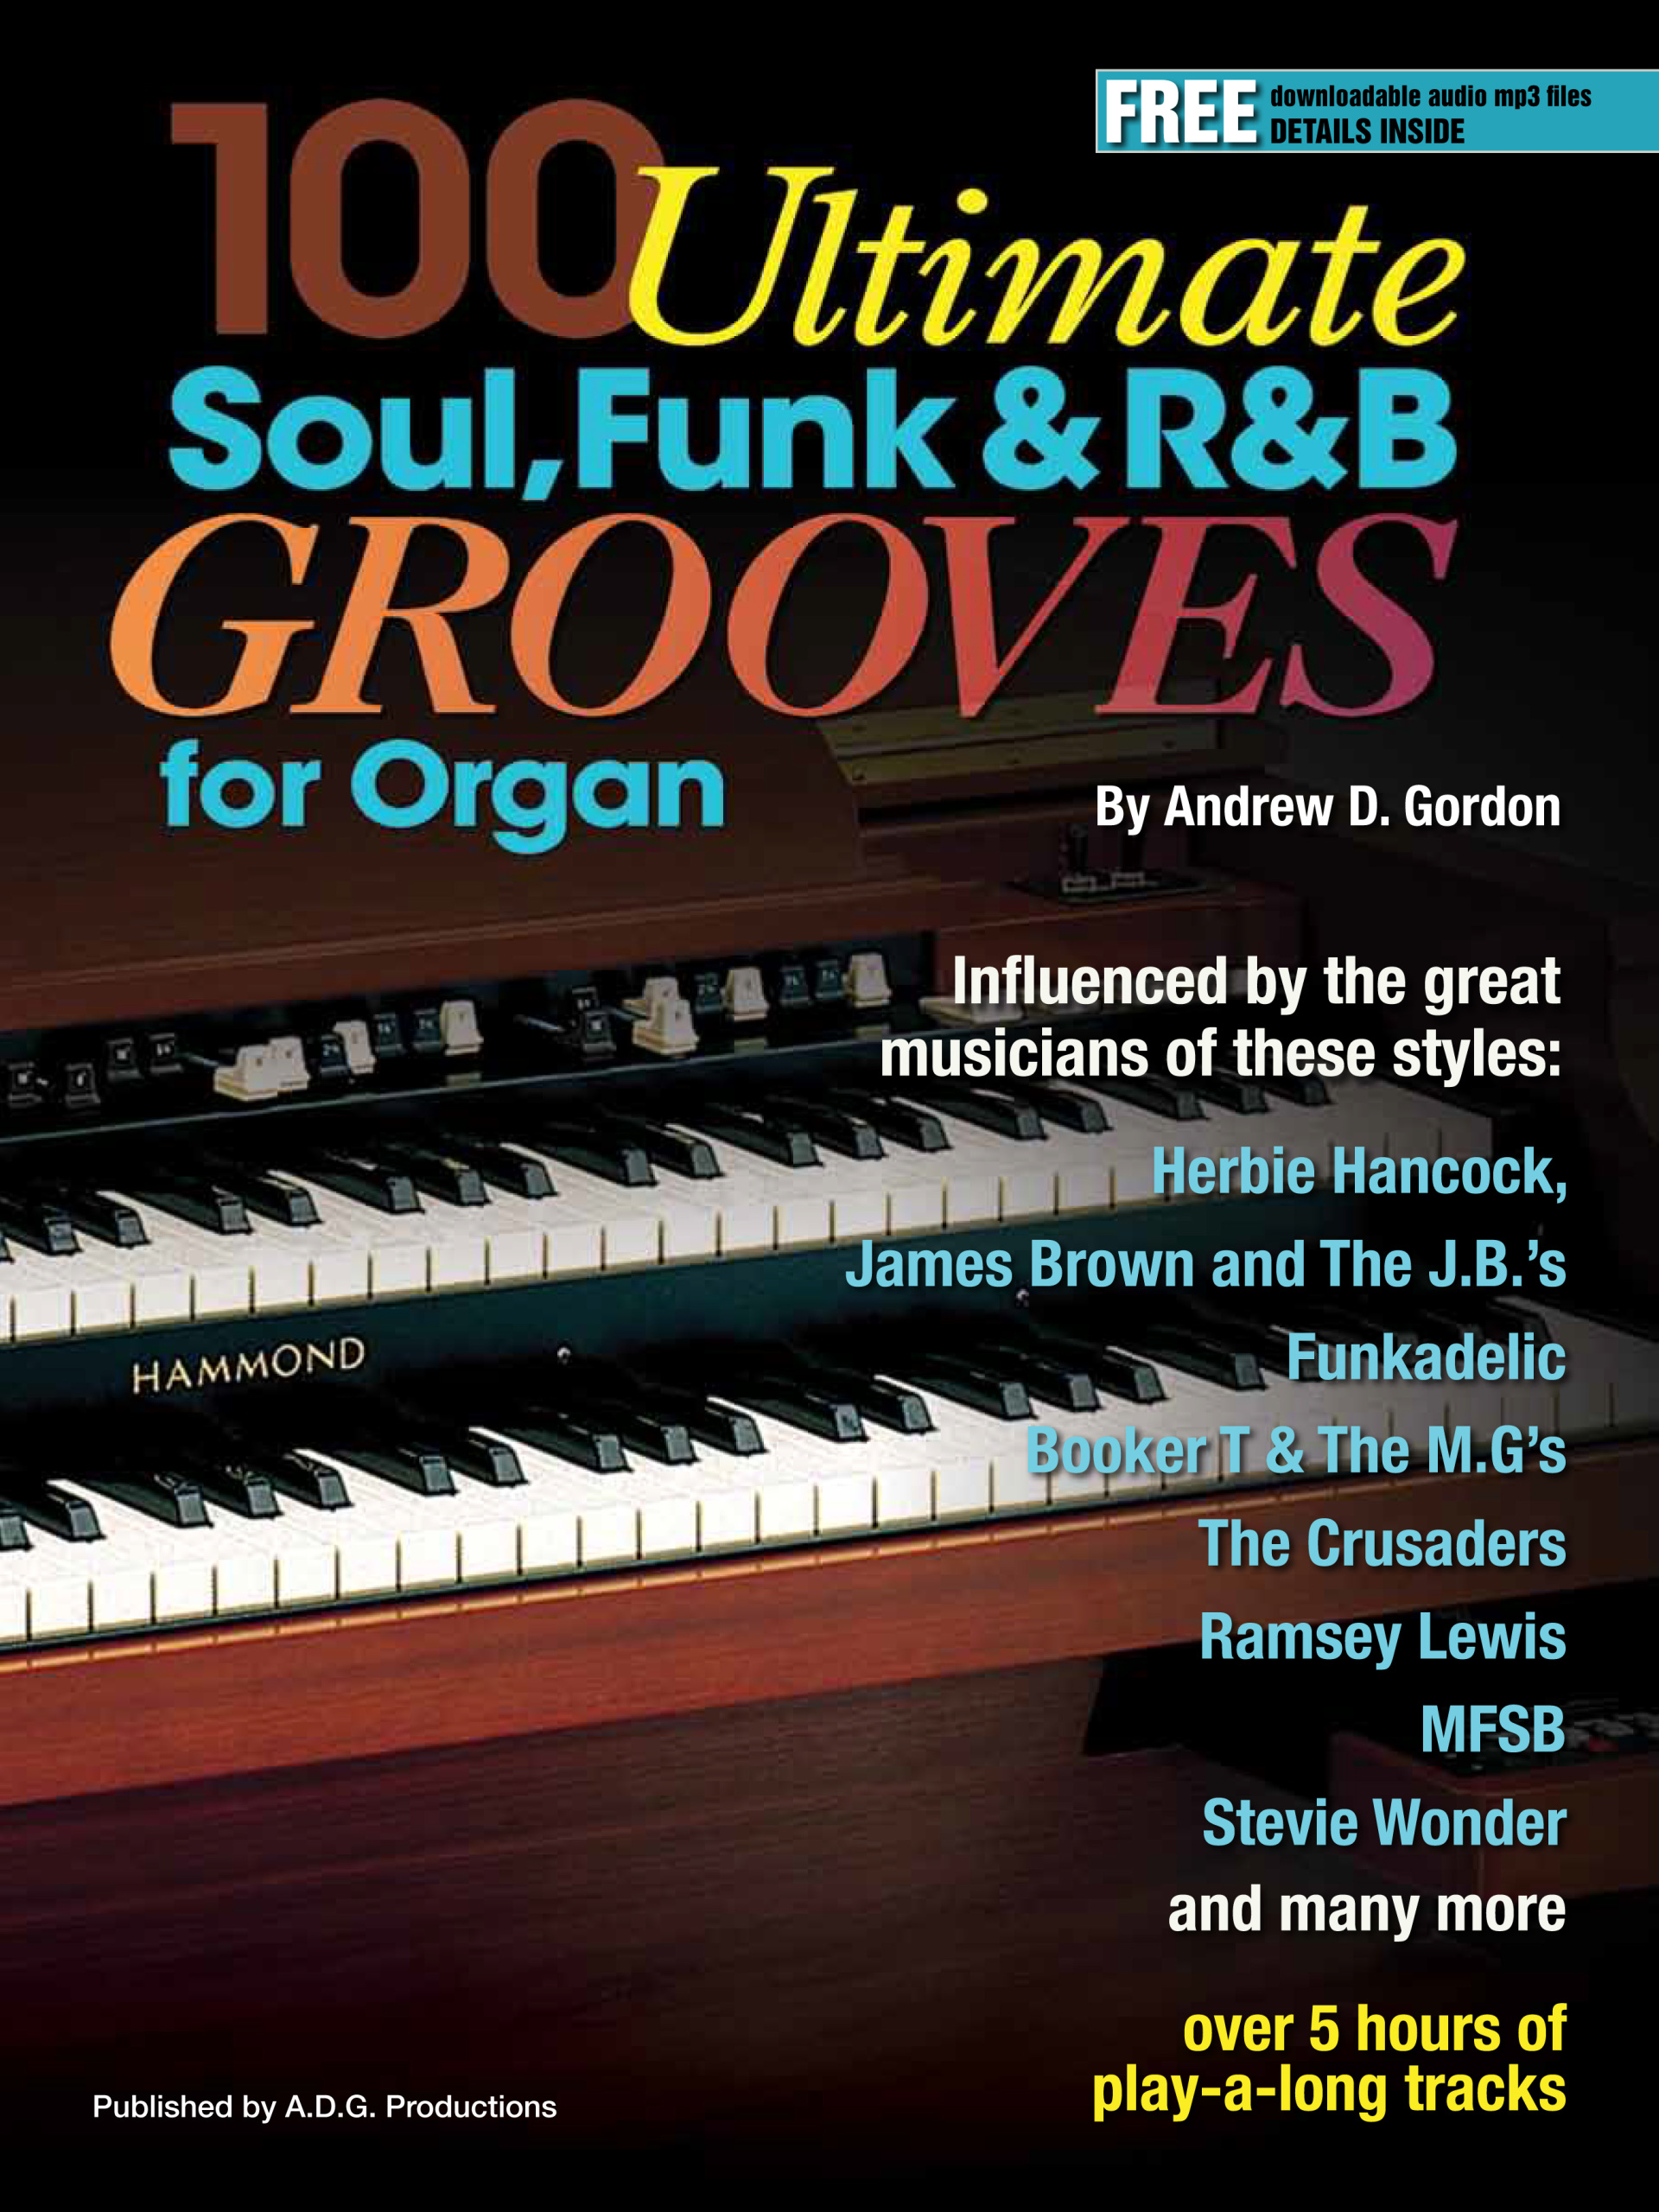 100 Ultimate Soul, Funk and R&B Grooves for Organ MIDI files